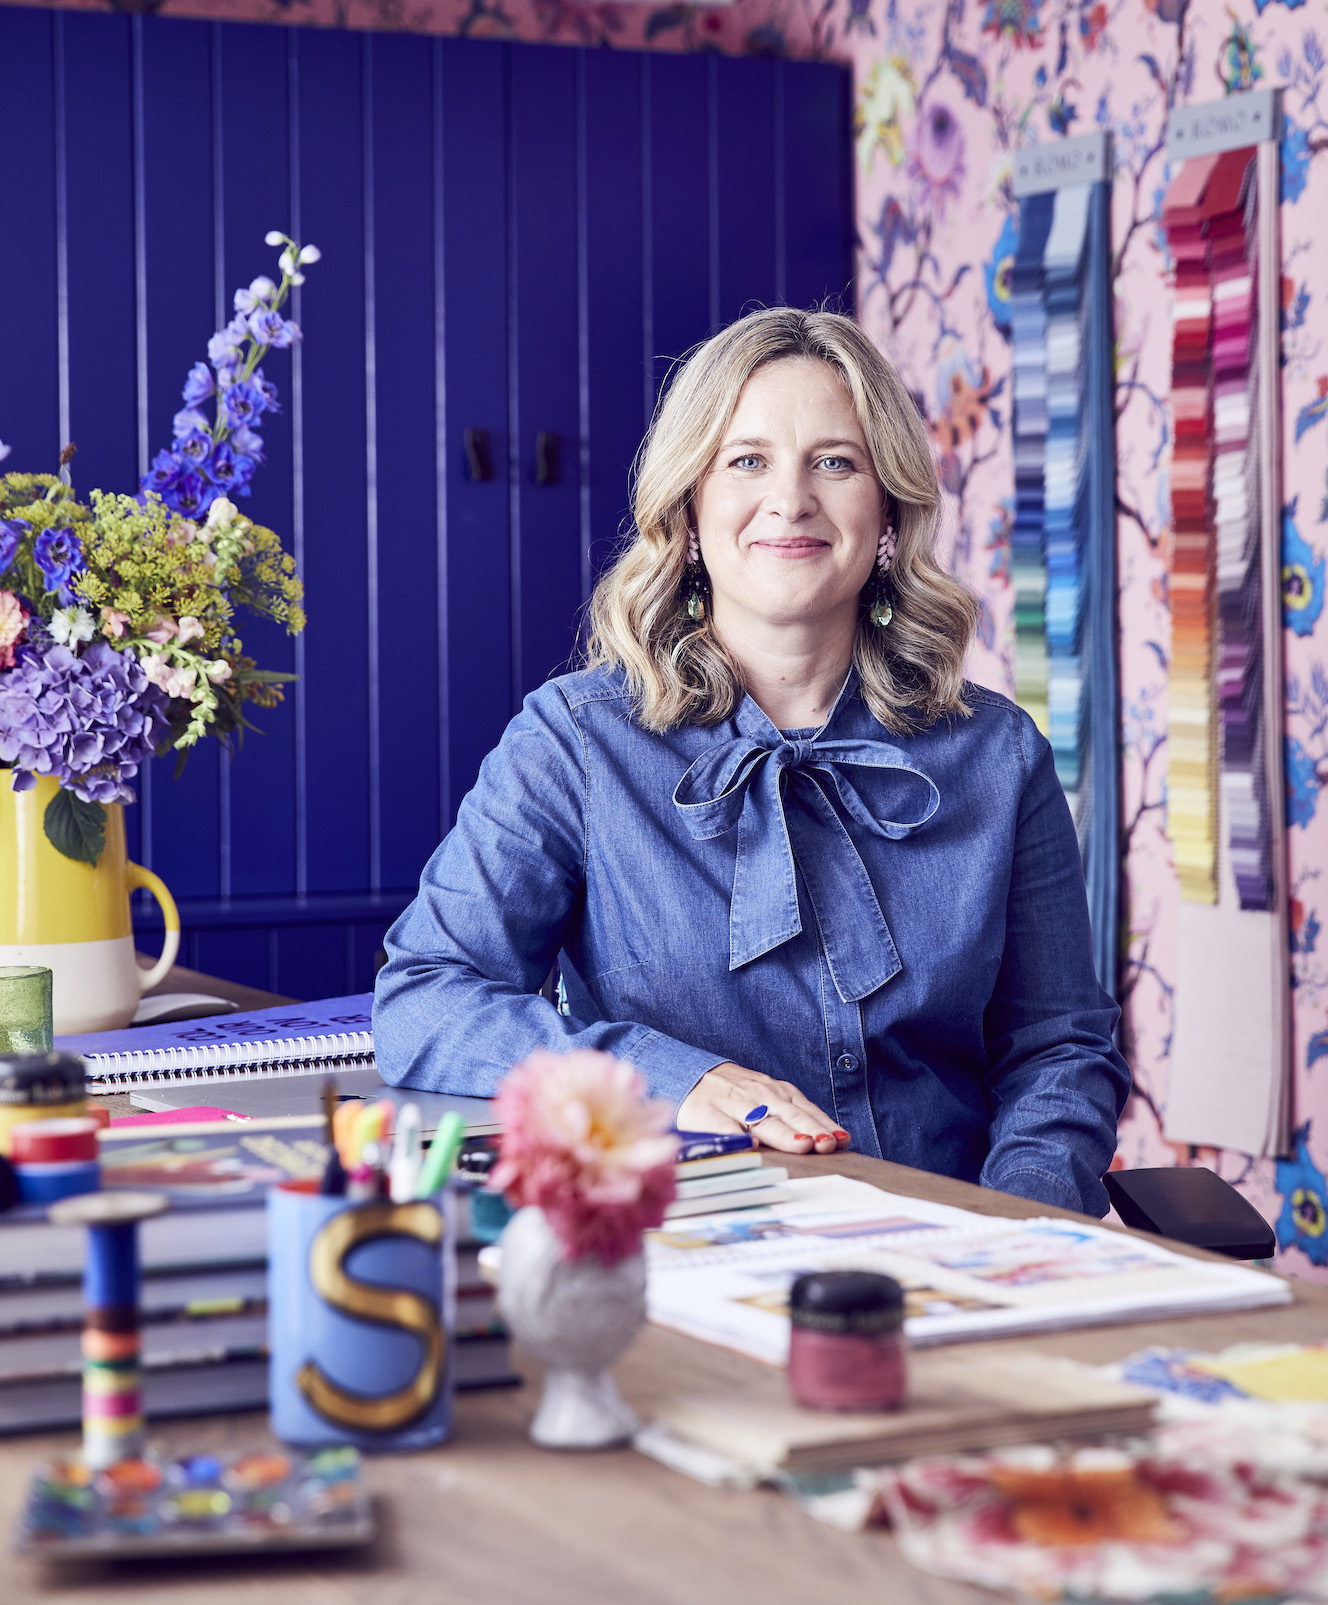 Sophie Robinson, of Sophie Robinson interiors